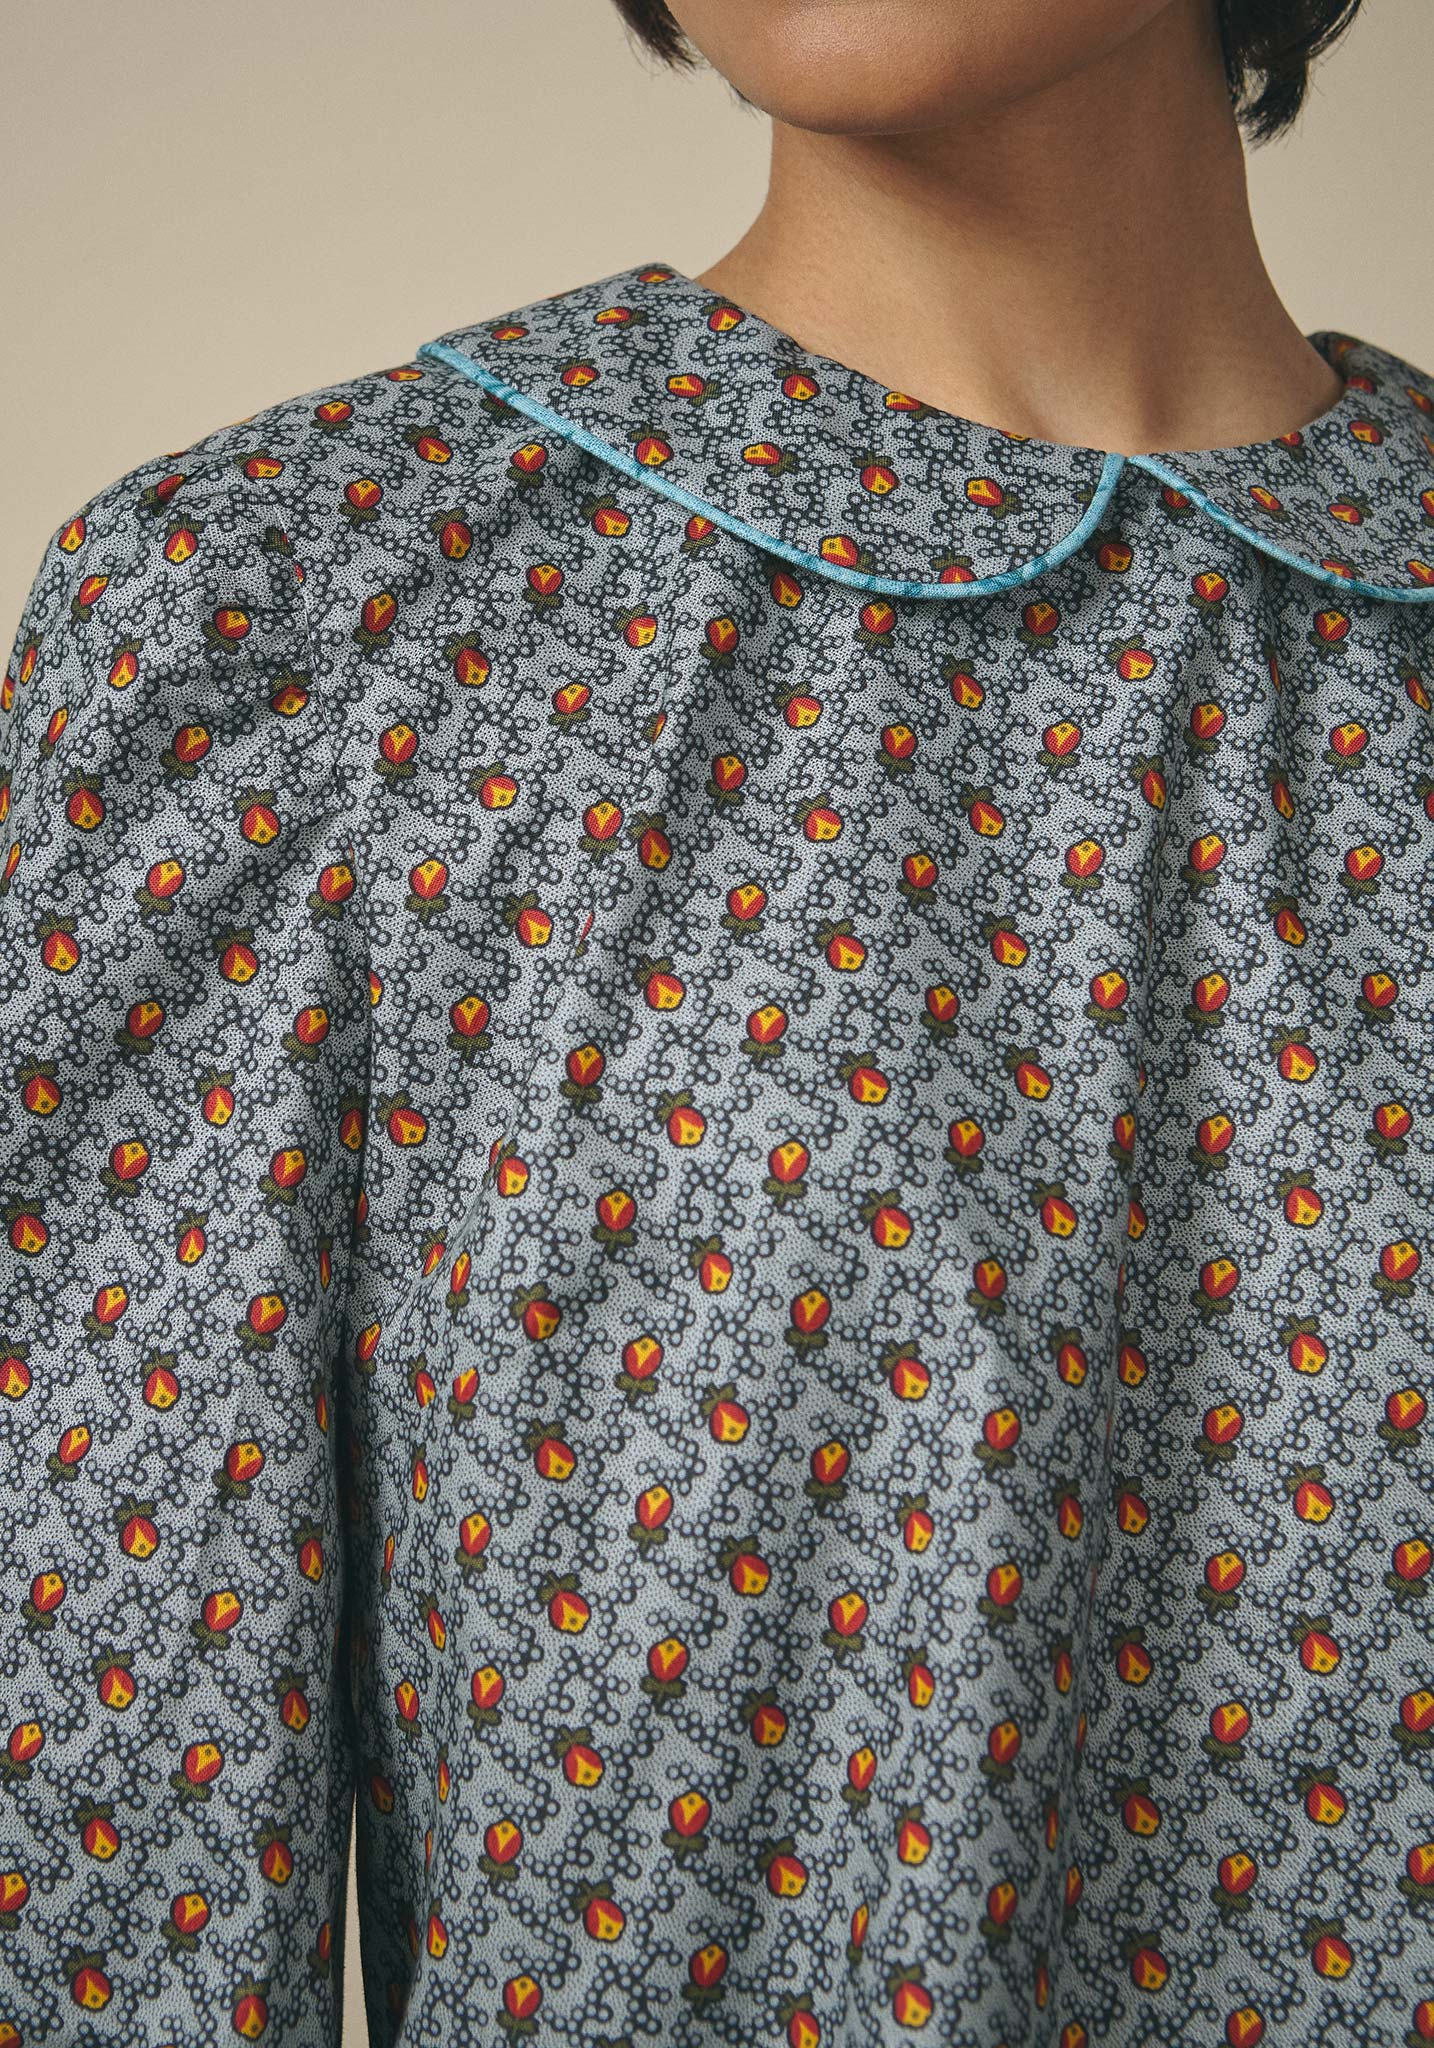 Batsheva, Blue Floral Peter Pan Blouse